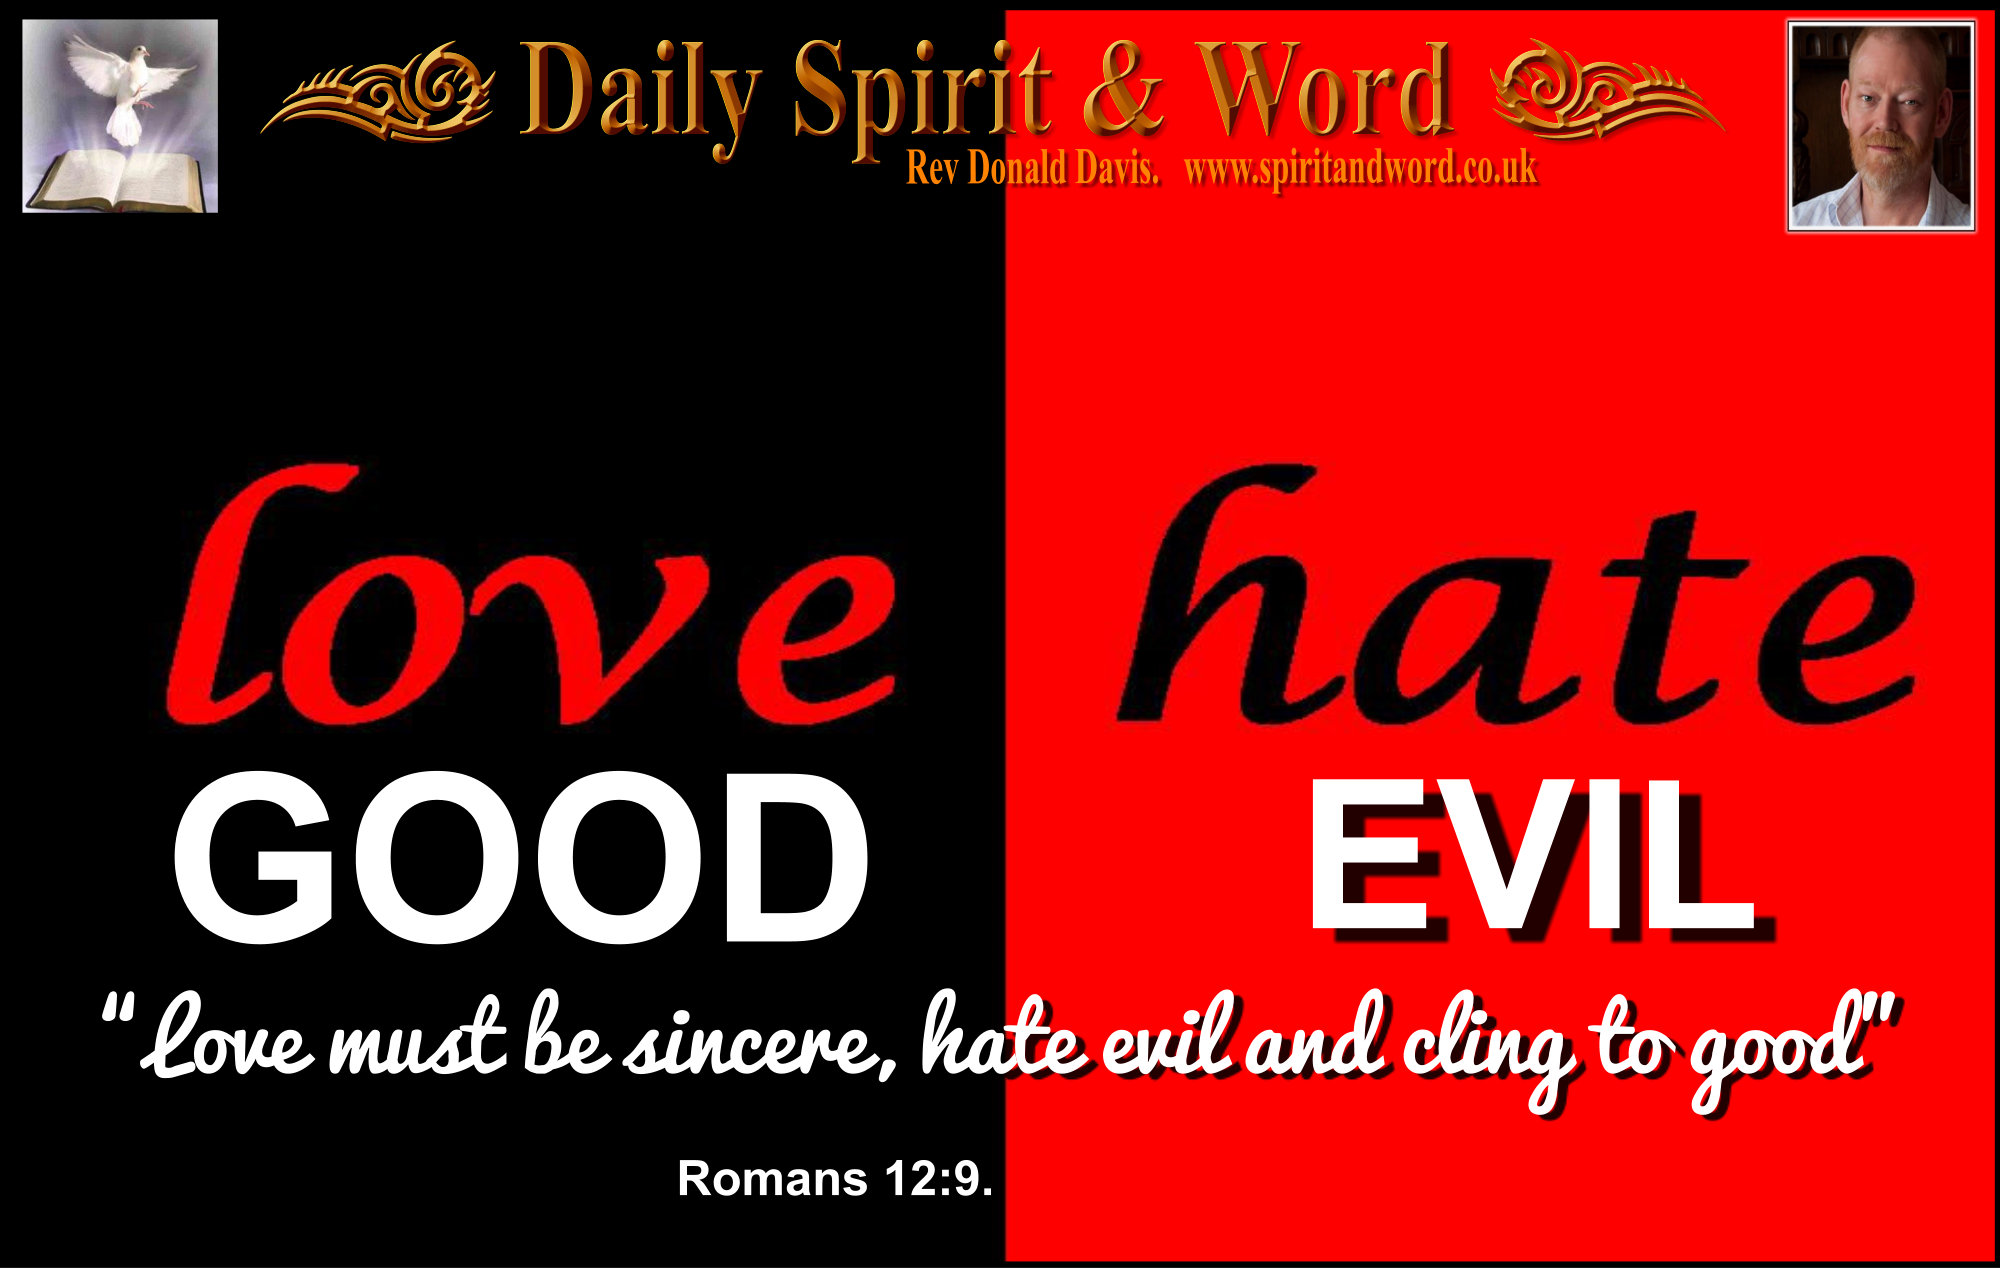 hate what is EVIL